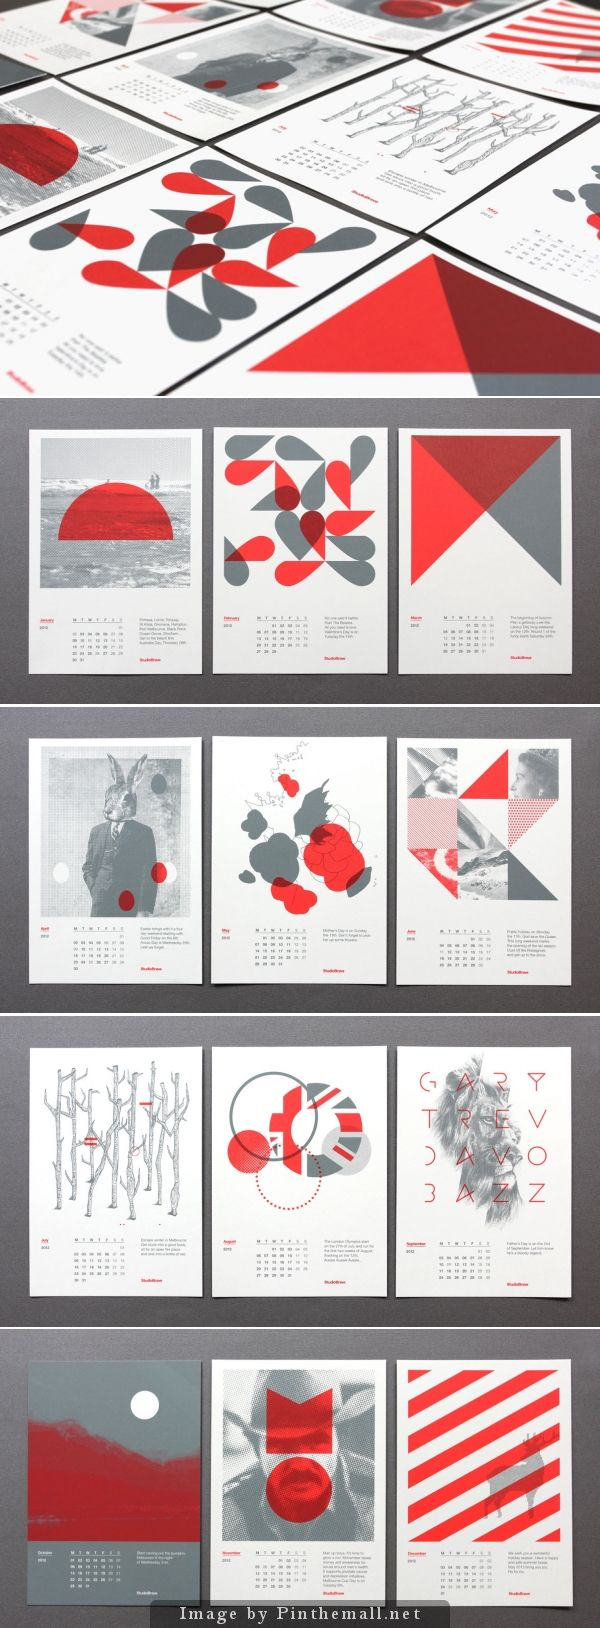 Calendar Cards. I really like the style and colours of it.